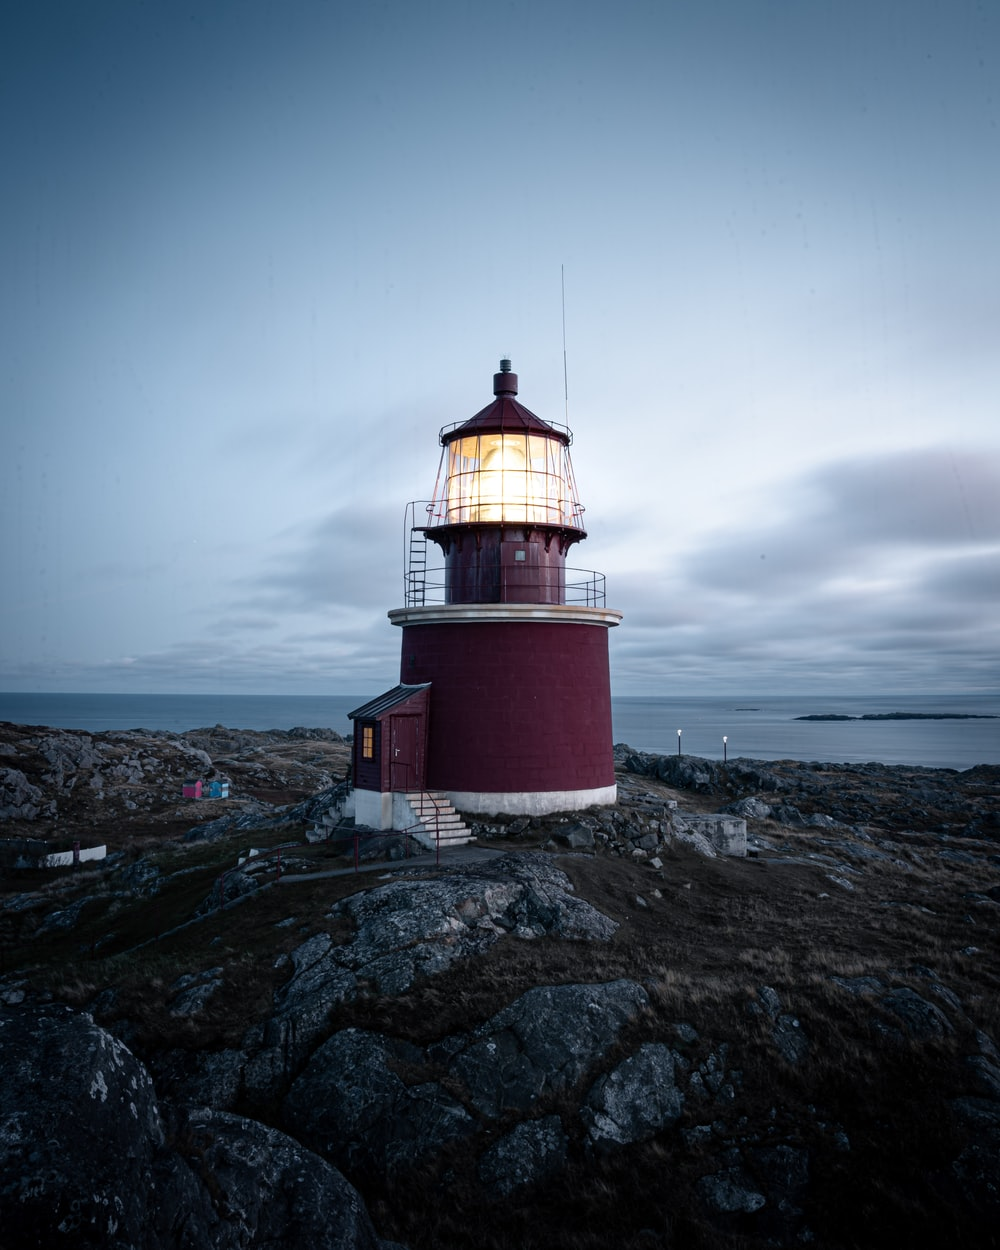 red and white lighthouse on gray rocky mountain under gray cloudy sky